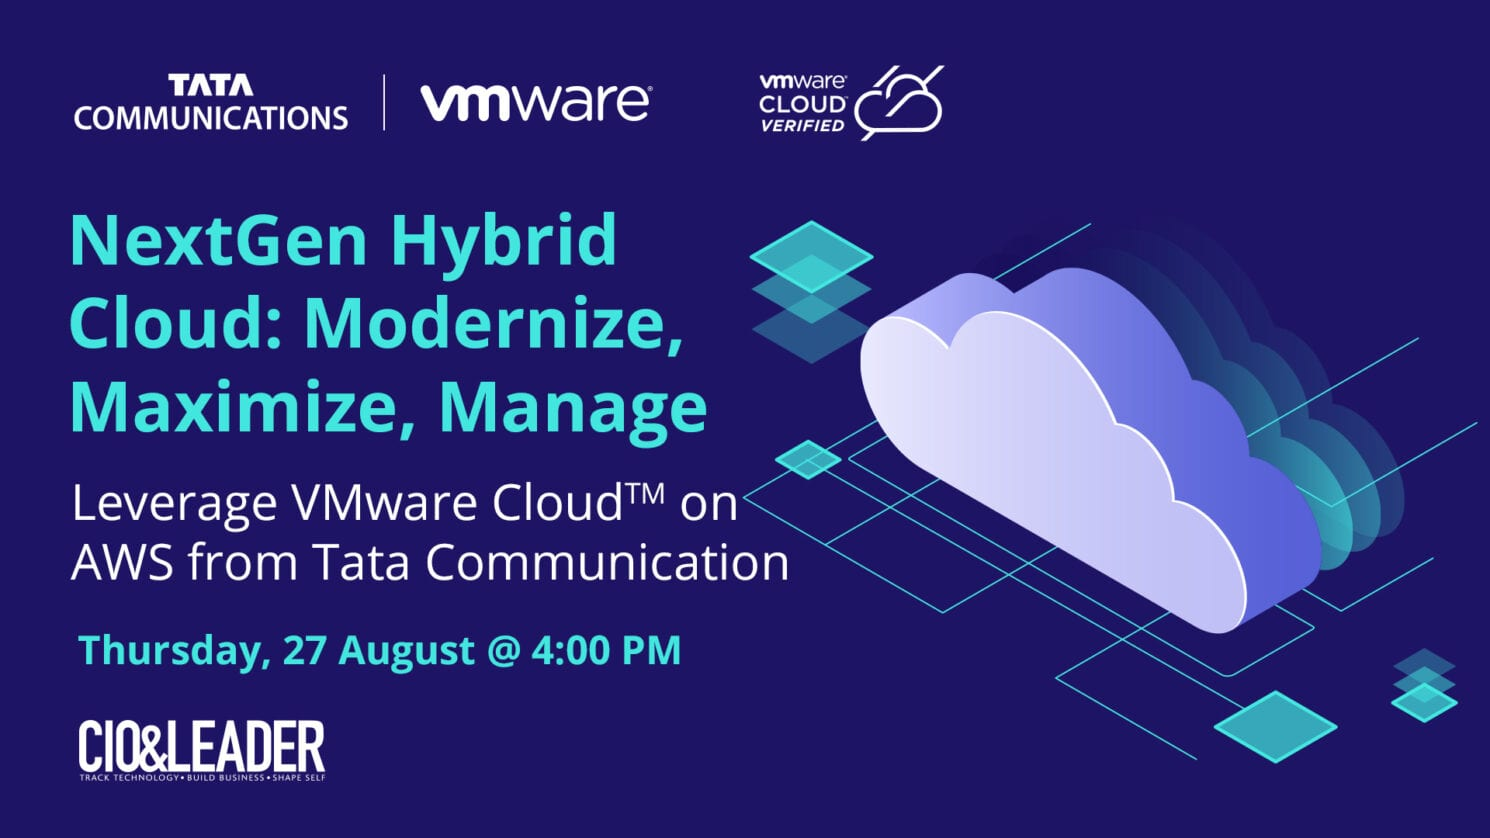 VMware Cloud™ on AWS, Managed by Tata Communications